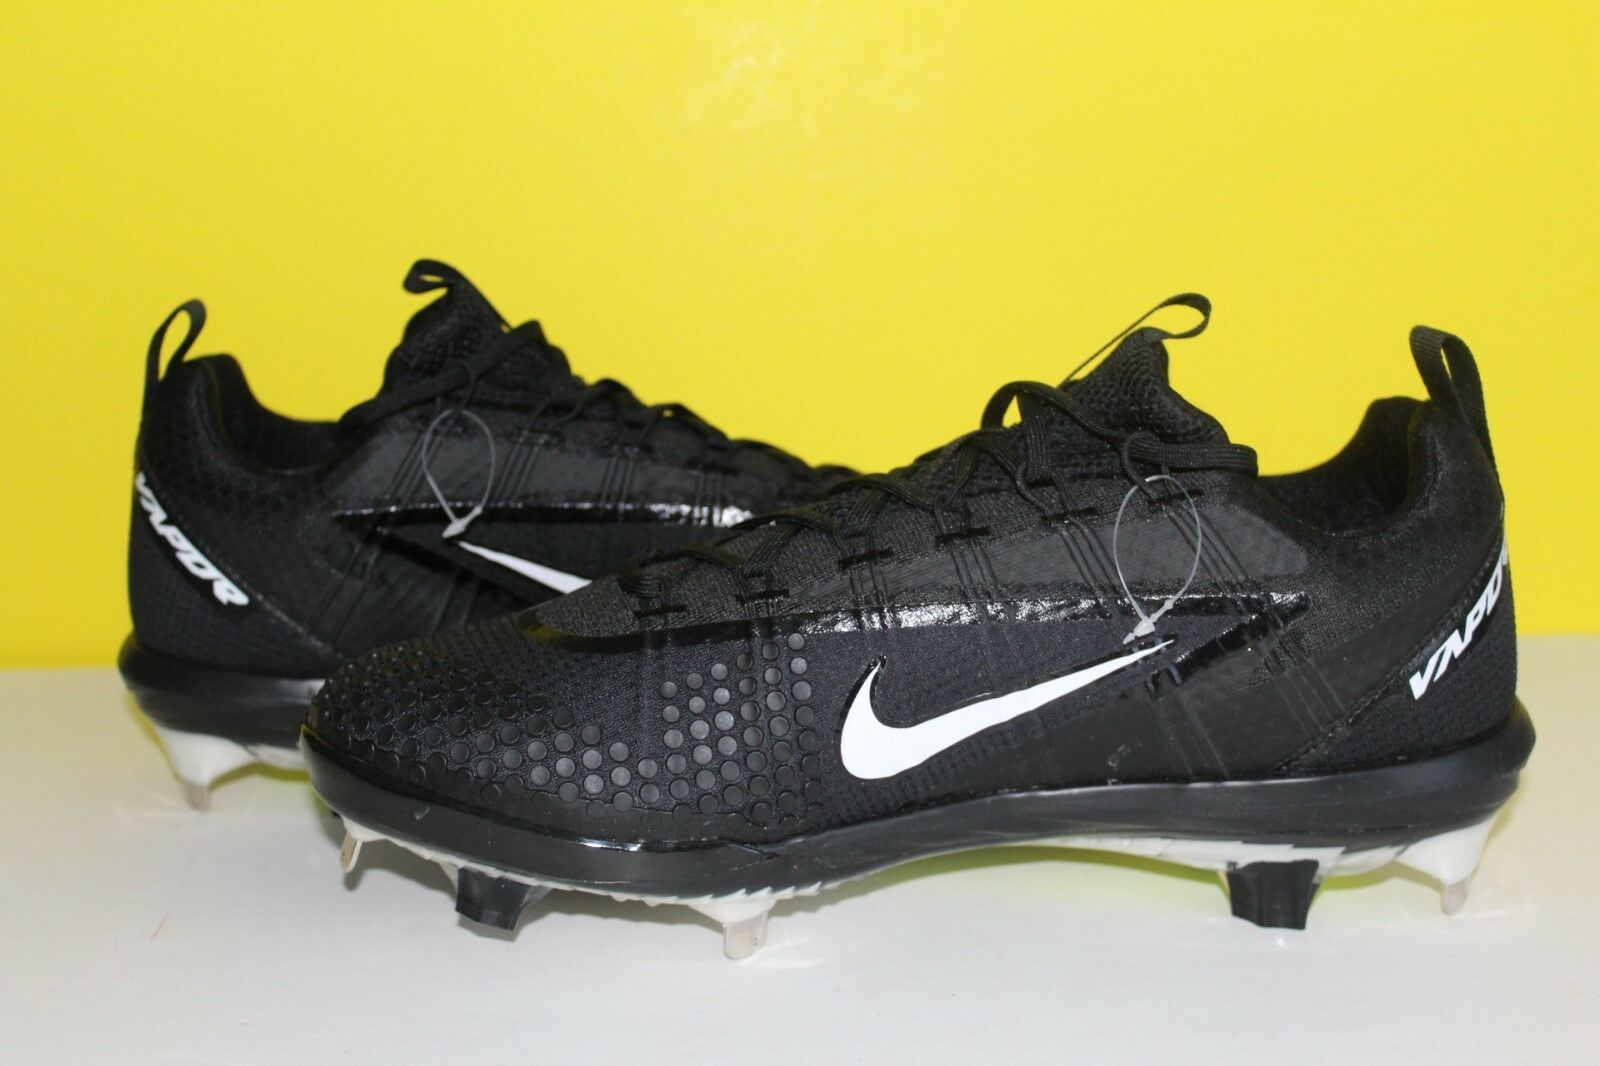 Nike Lunar Vapor Ultrafly Elite Men's Sz 11 Baseball Cleat Shoes 852686-010 best-selling model of the brand